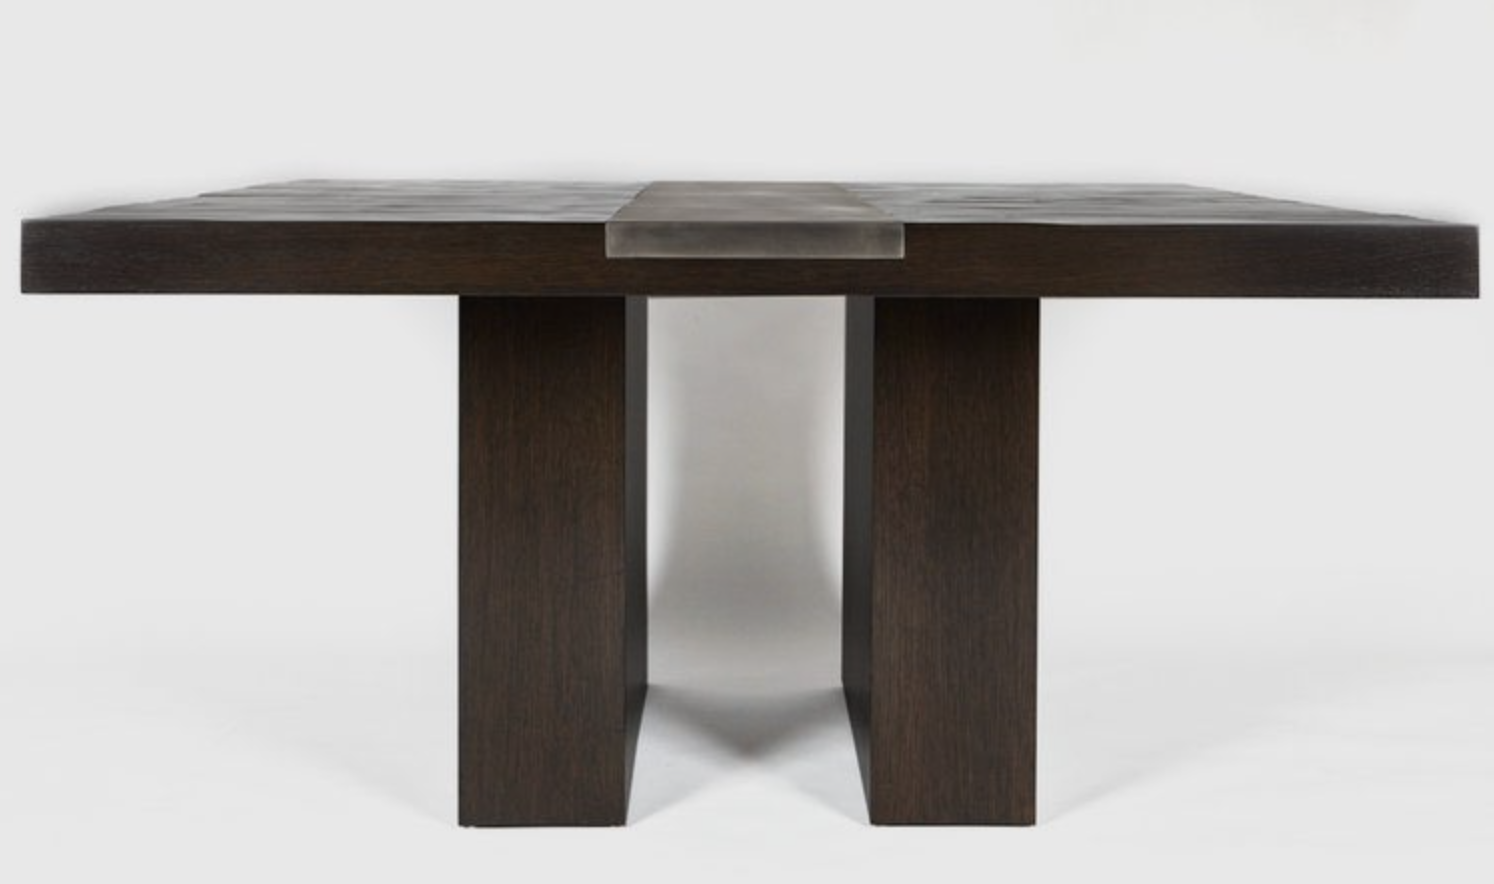 Aguirre Design - Valentine Dining Table - Bamboo and Blackened Steel